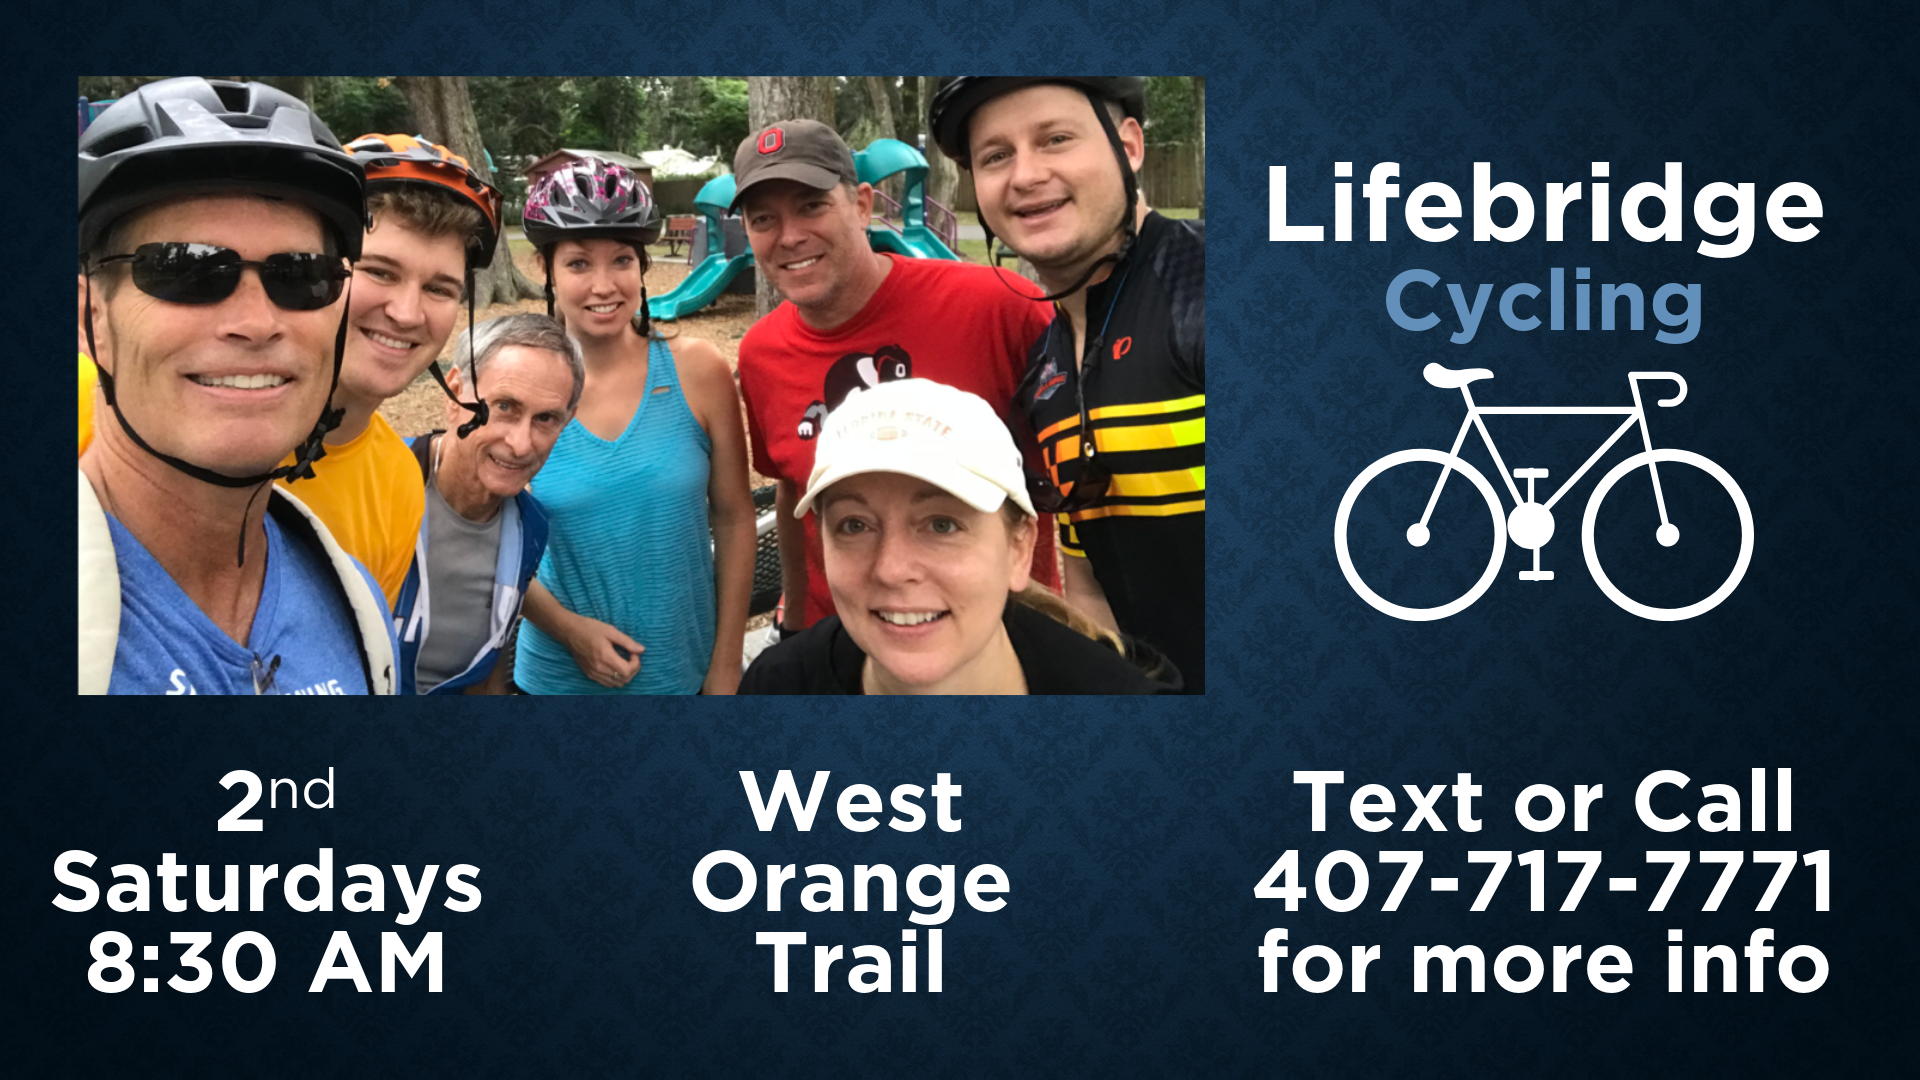 Lifebridge Cycling is your opportunity to dust off the old bike saddle and come out for a morning of cycling and fellowship. We will be riding down the West orange Trail at 8:30a on the 2nd Saturday of each month.